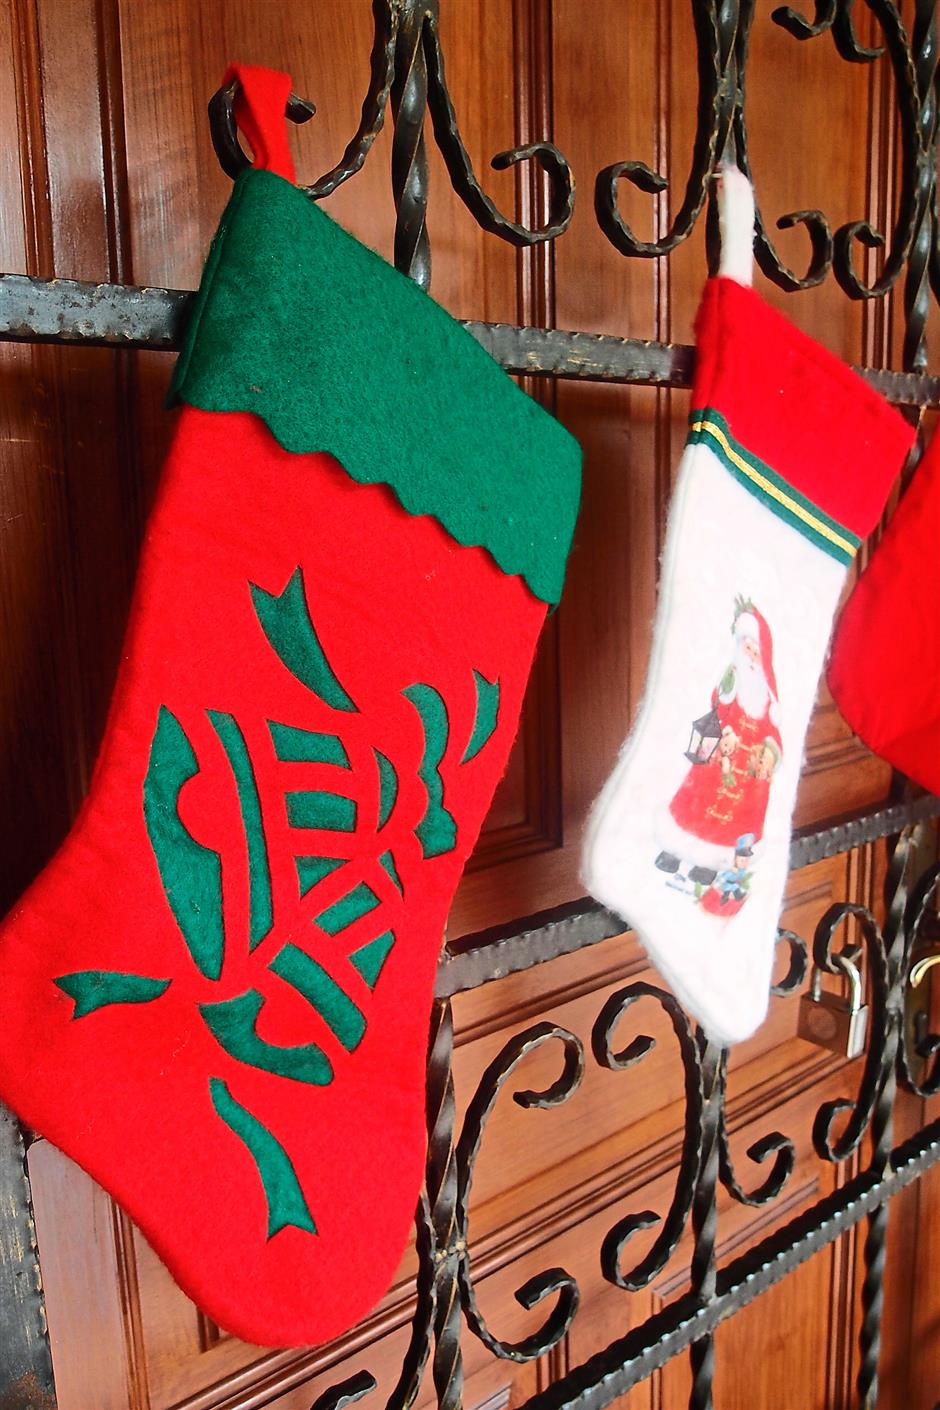 3. Christmas stockings - Using Christmas stockings as decorations draws influence from the legend of Saint Nicholas of Myra.Top 10 story: 10 Christmas traditions origins.